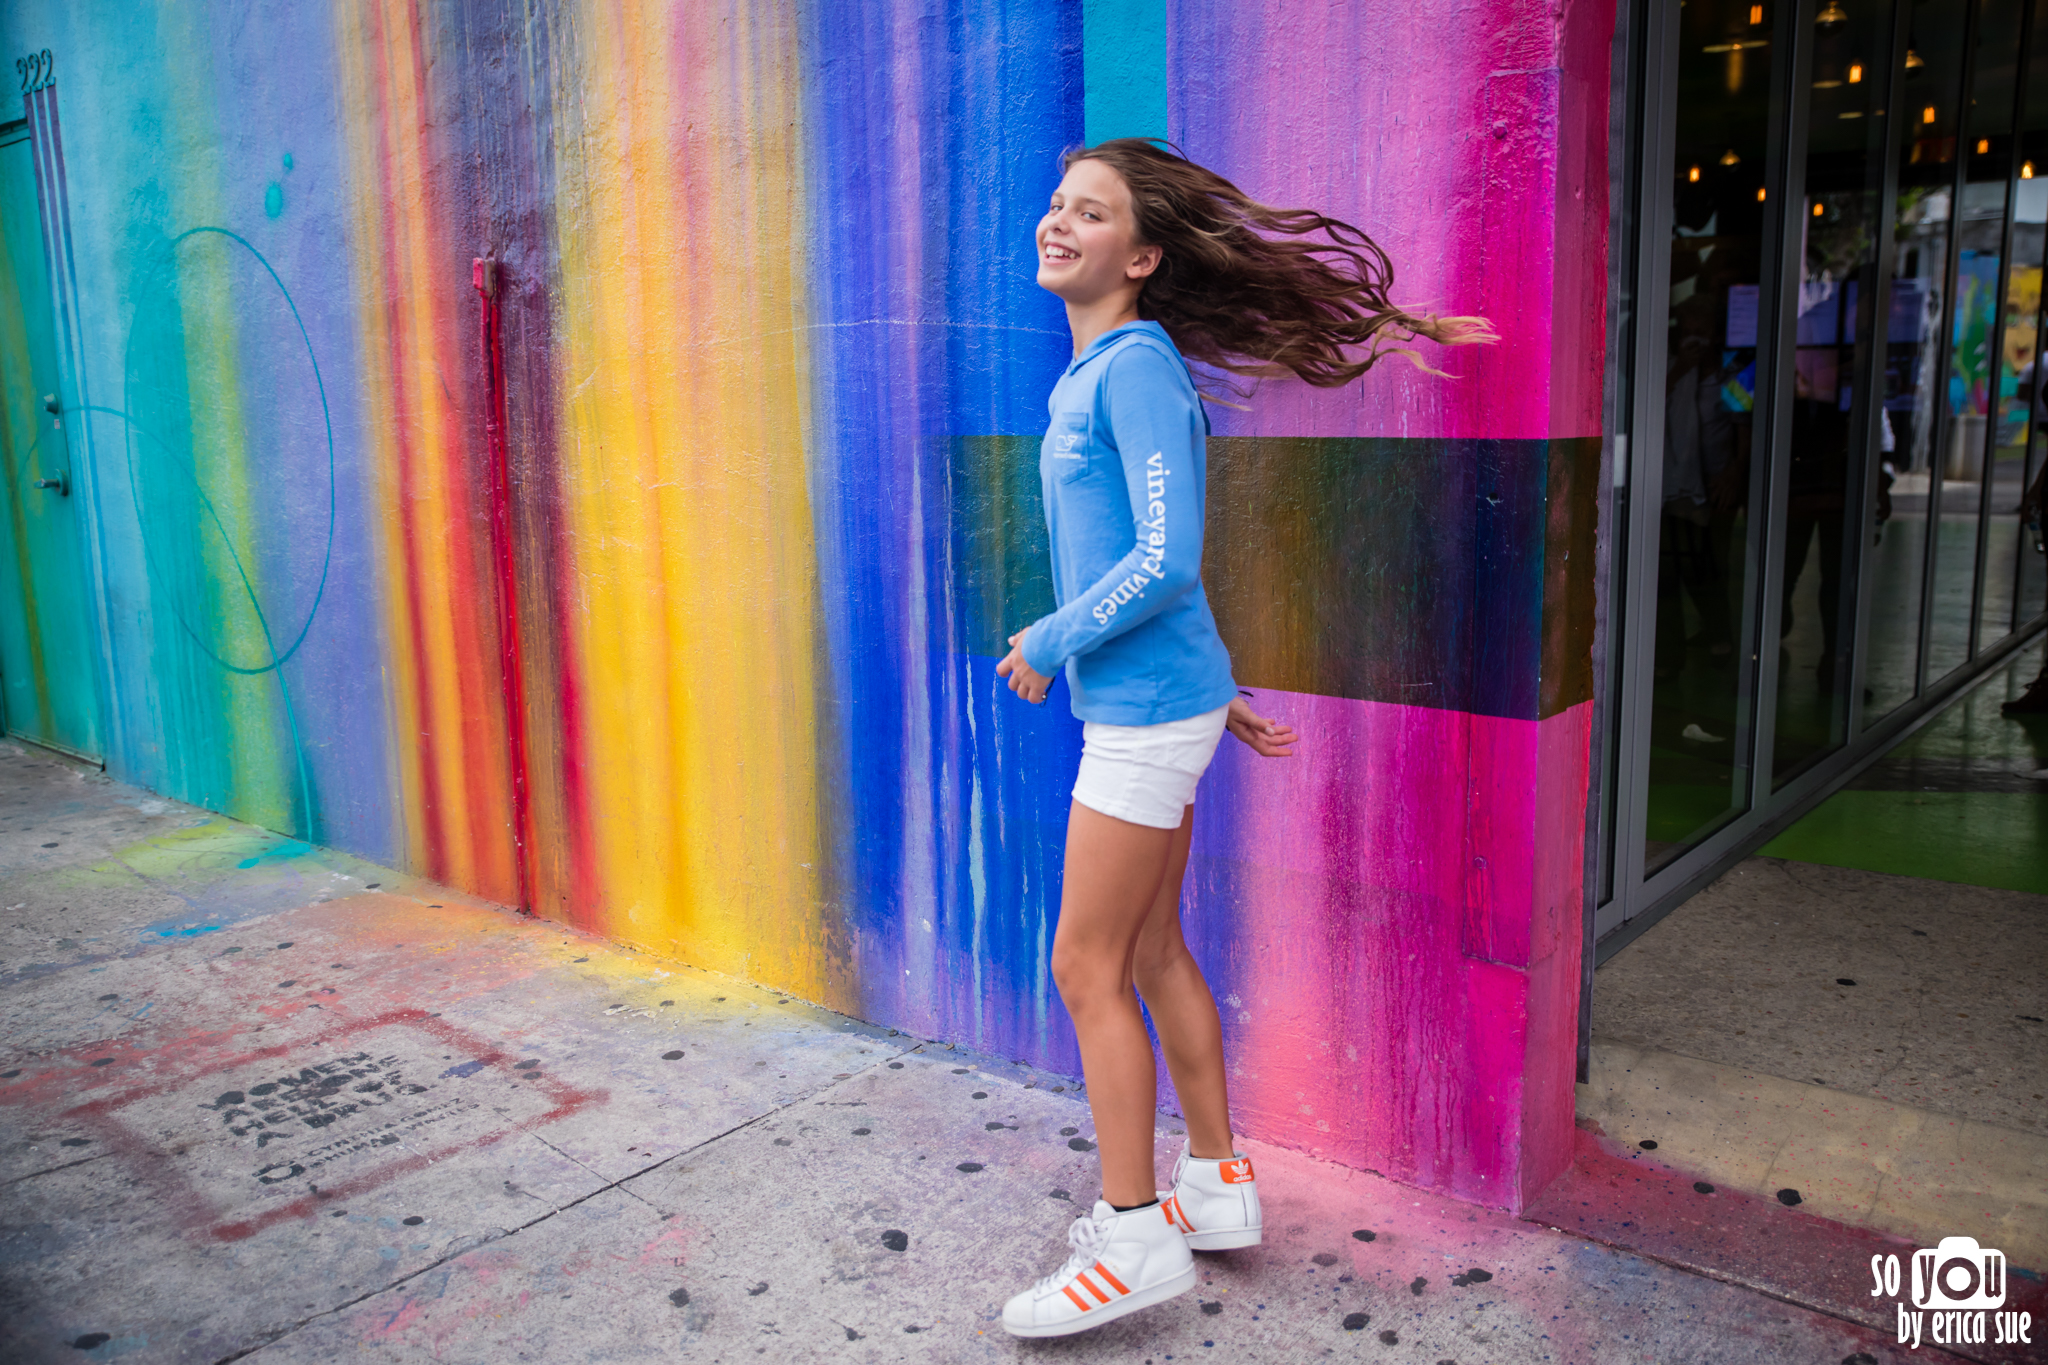 so-you-by-erica-sue-wynwood-walls-miami-photography-mitzvah-pre-shoot-5517.jpg